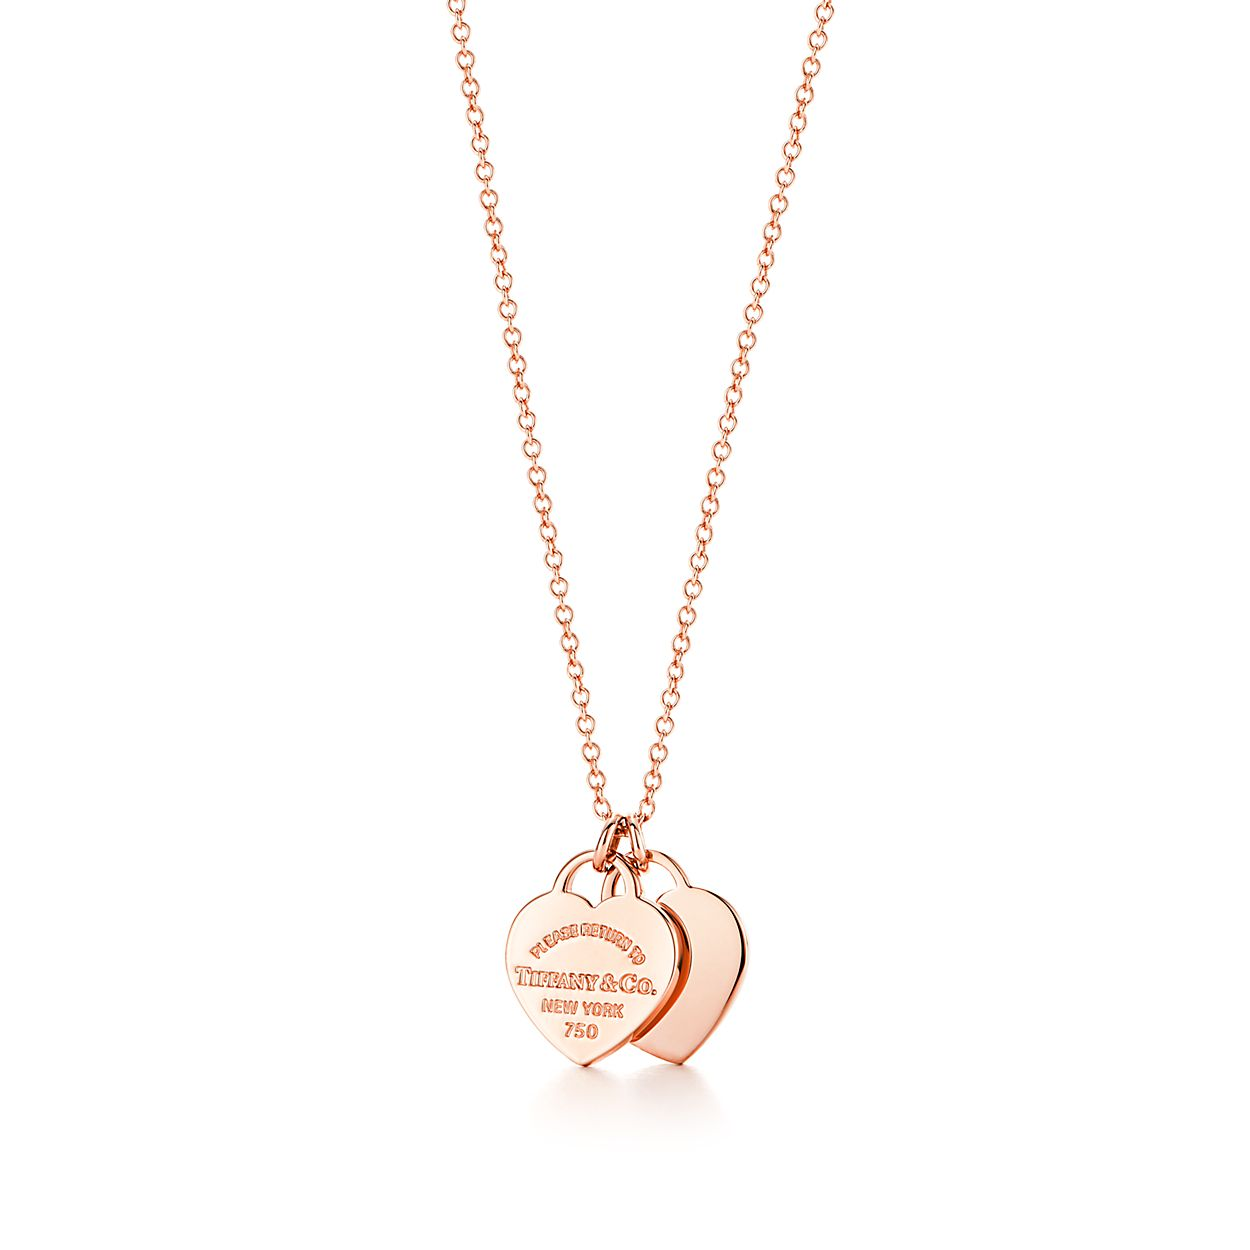 tiffany necklaces id ed pendant jewelry tag to hei double fit pendants heart rose fmt return constrain in wid gold mini